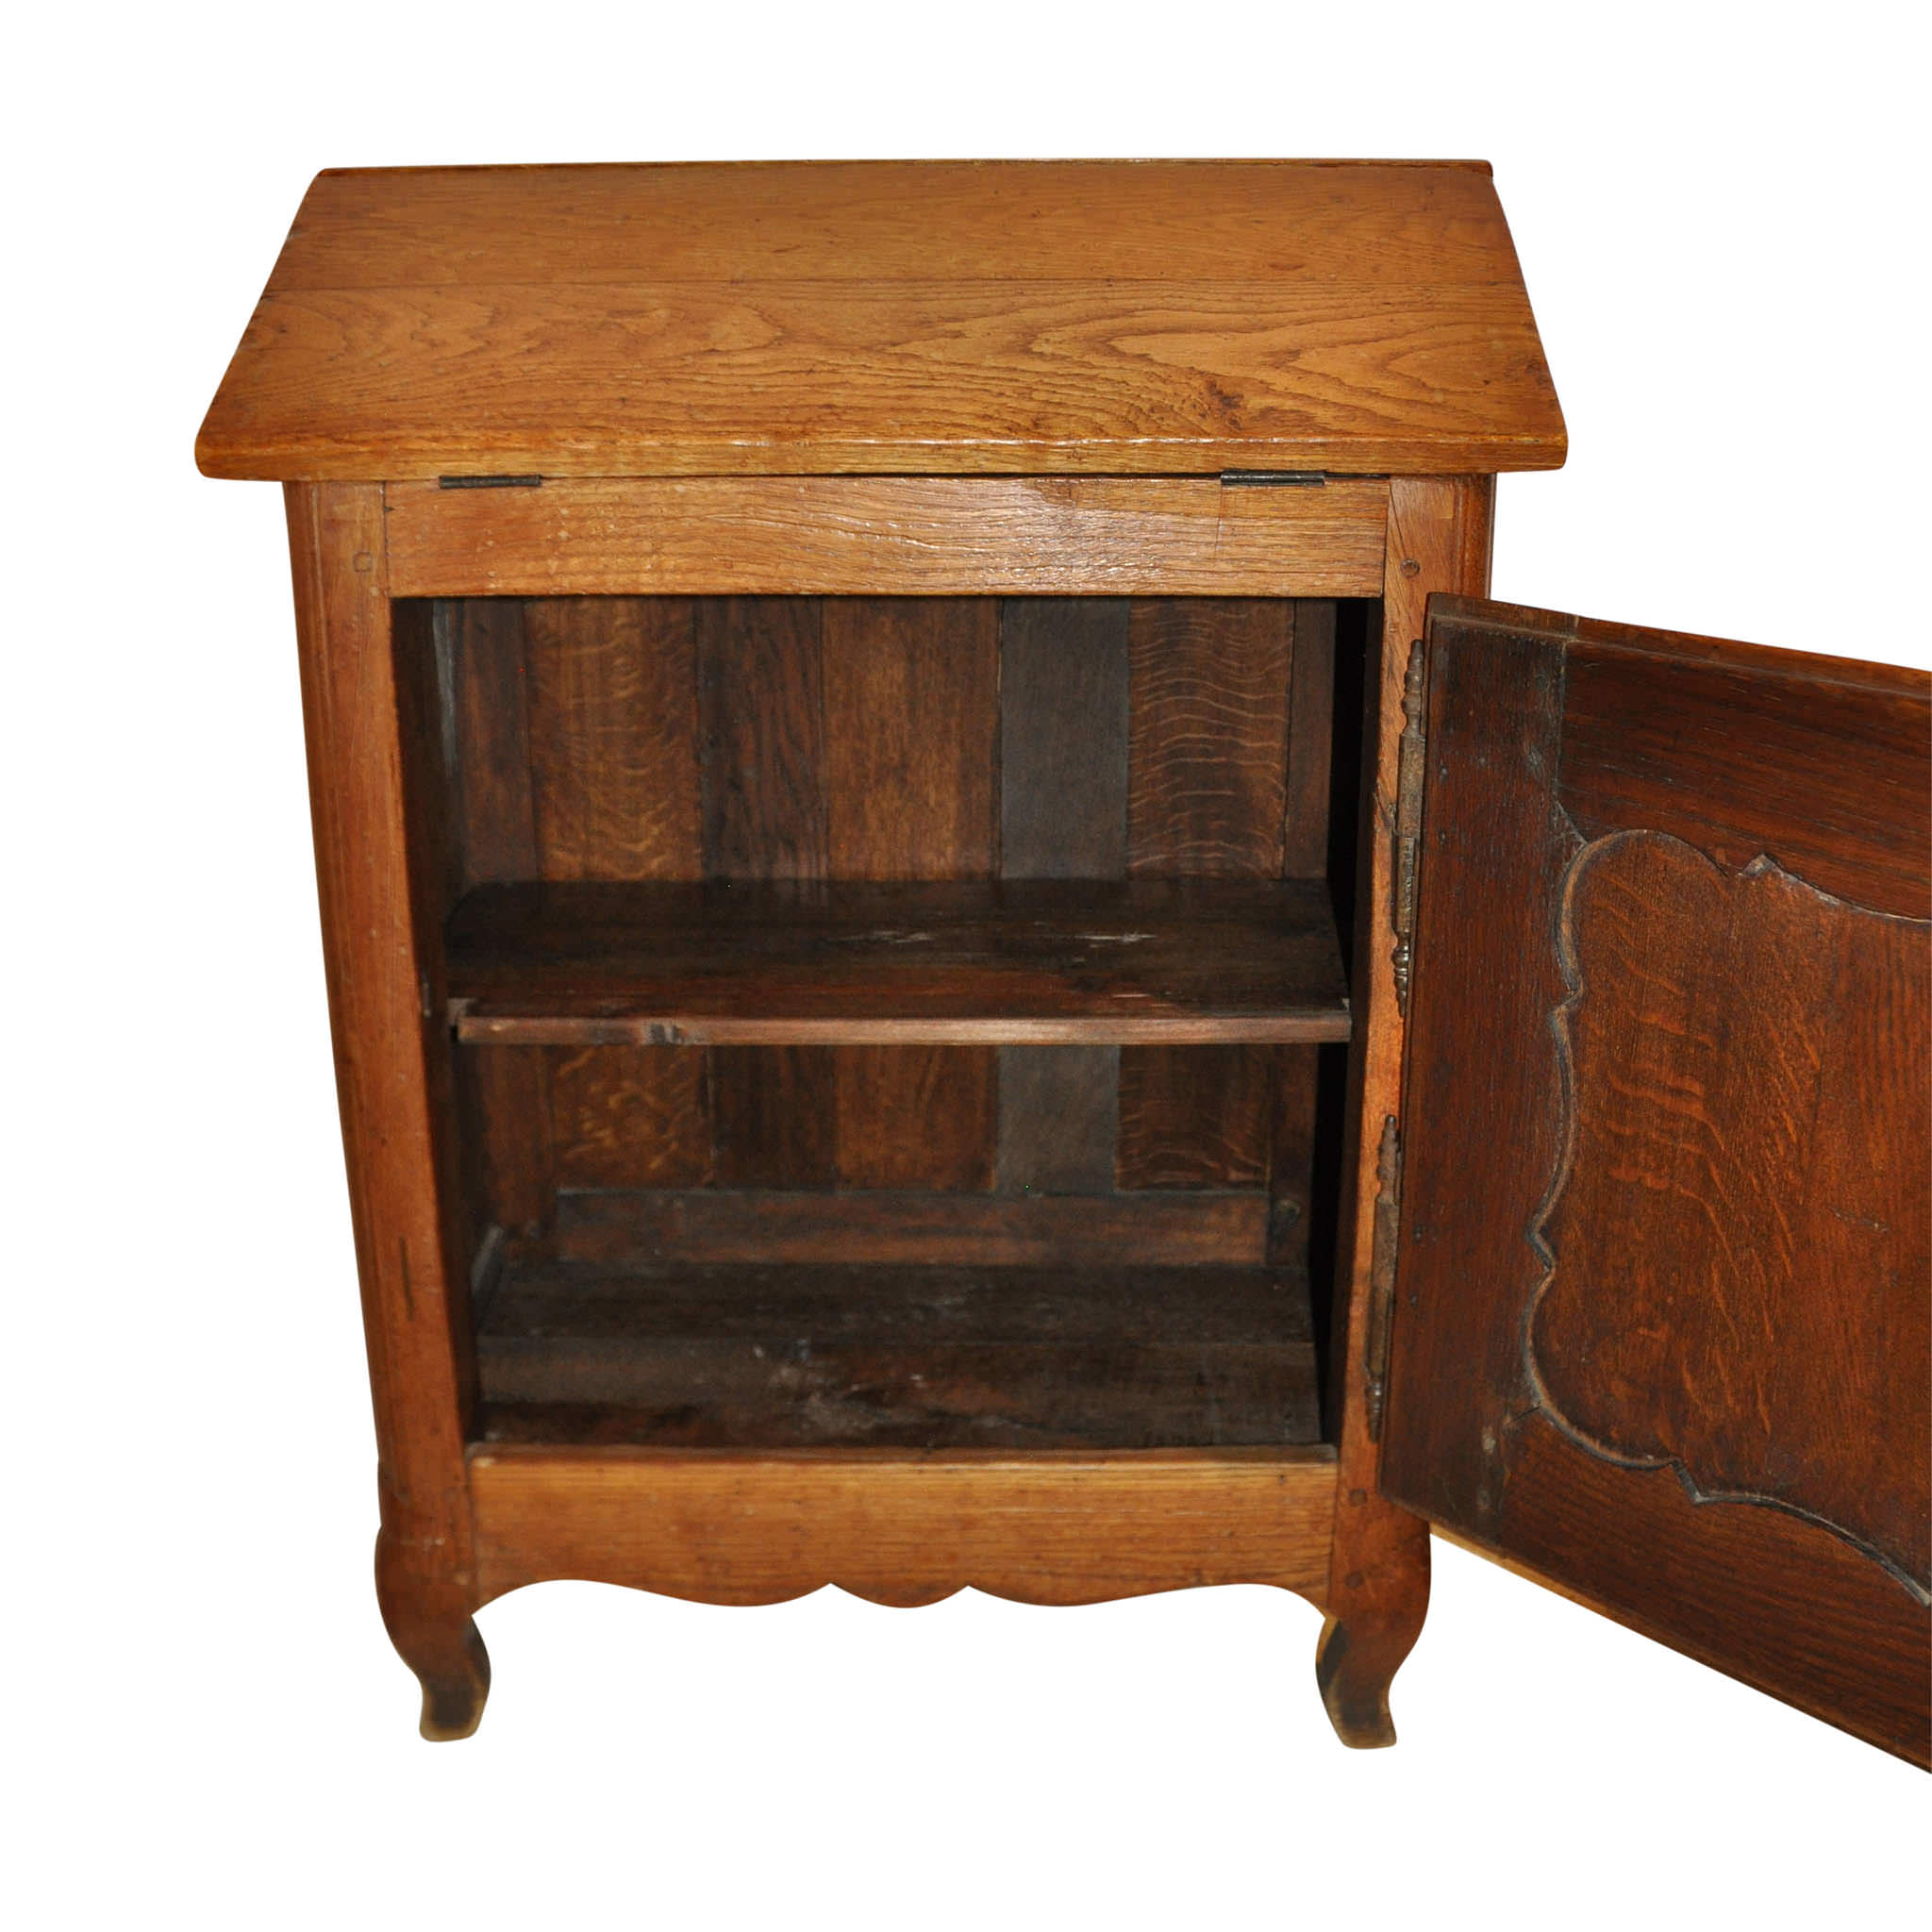 Rustic French Cabinet